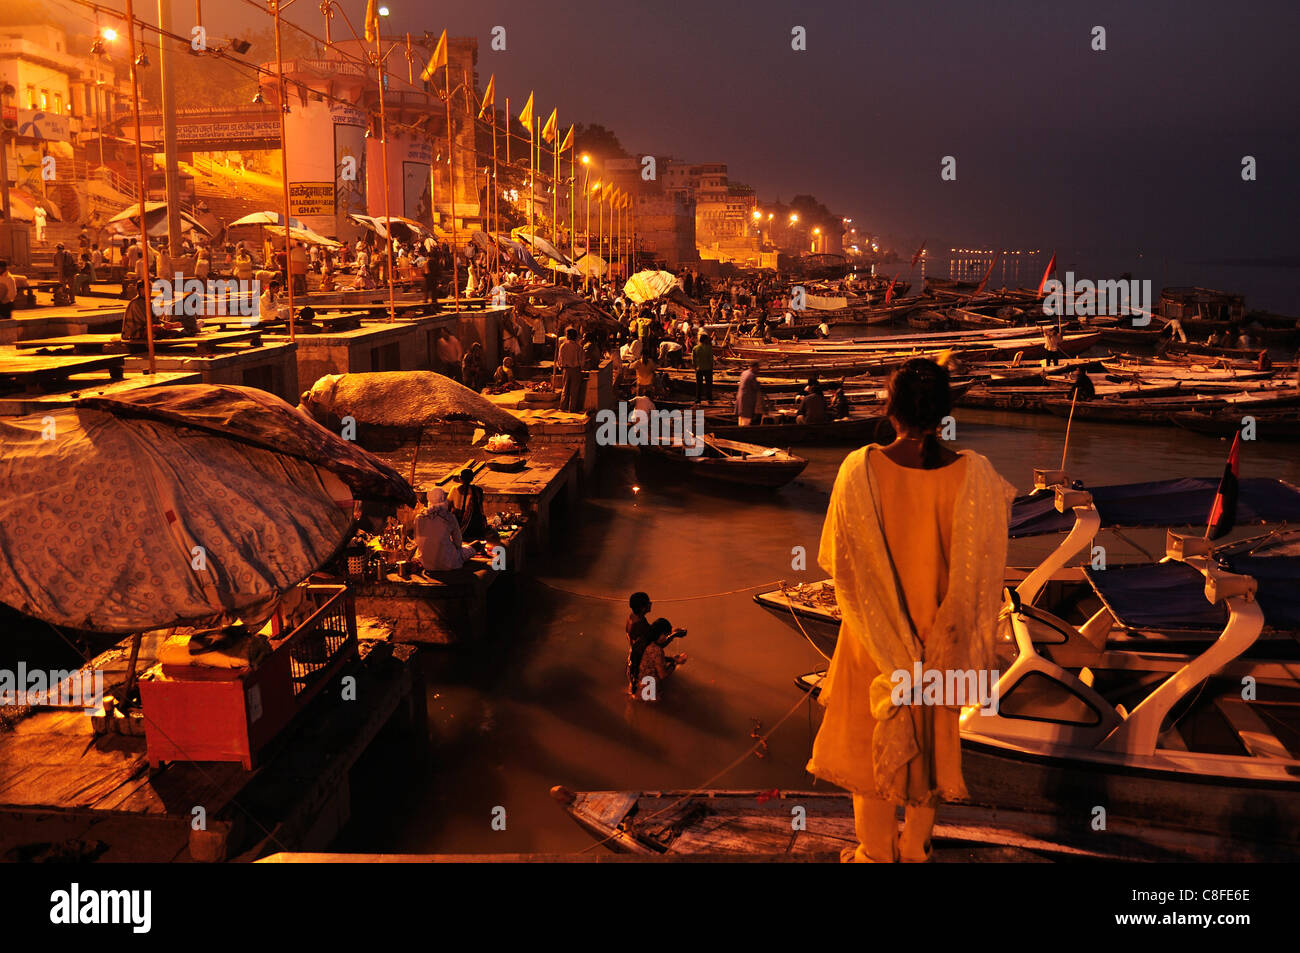 Ghats on the River Ganges, Varanasi (Benares, Uttar Pradesh, India - Stock Image